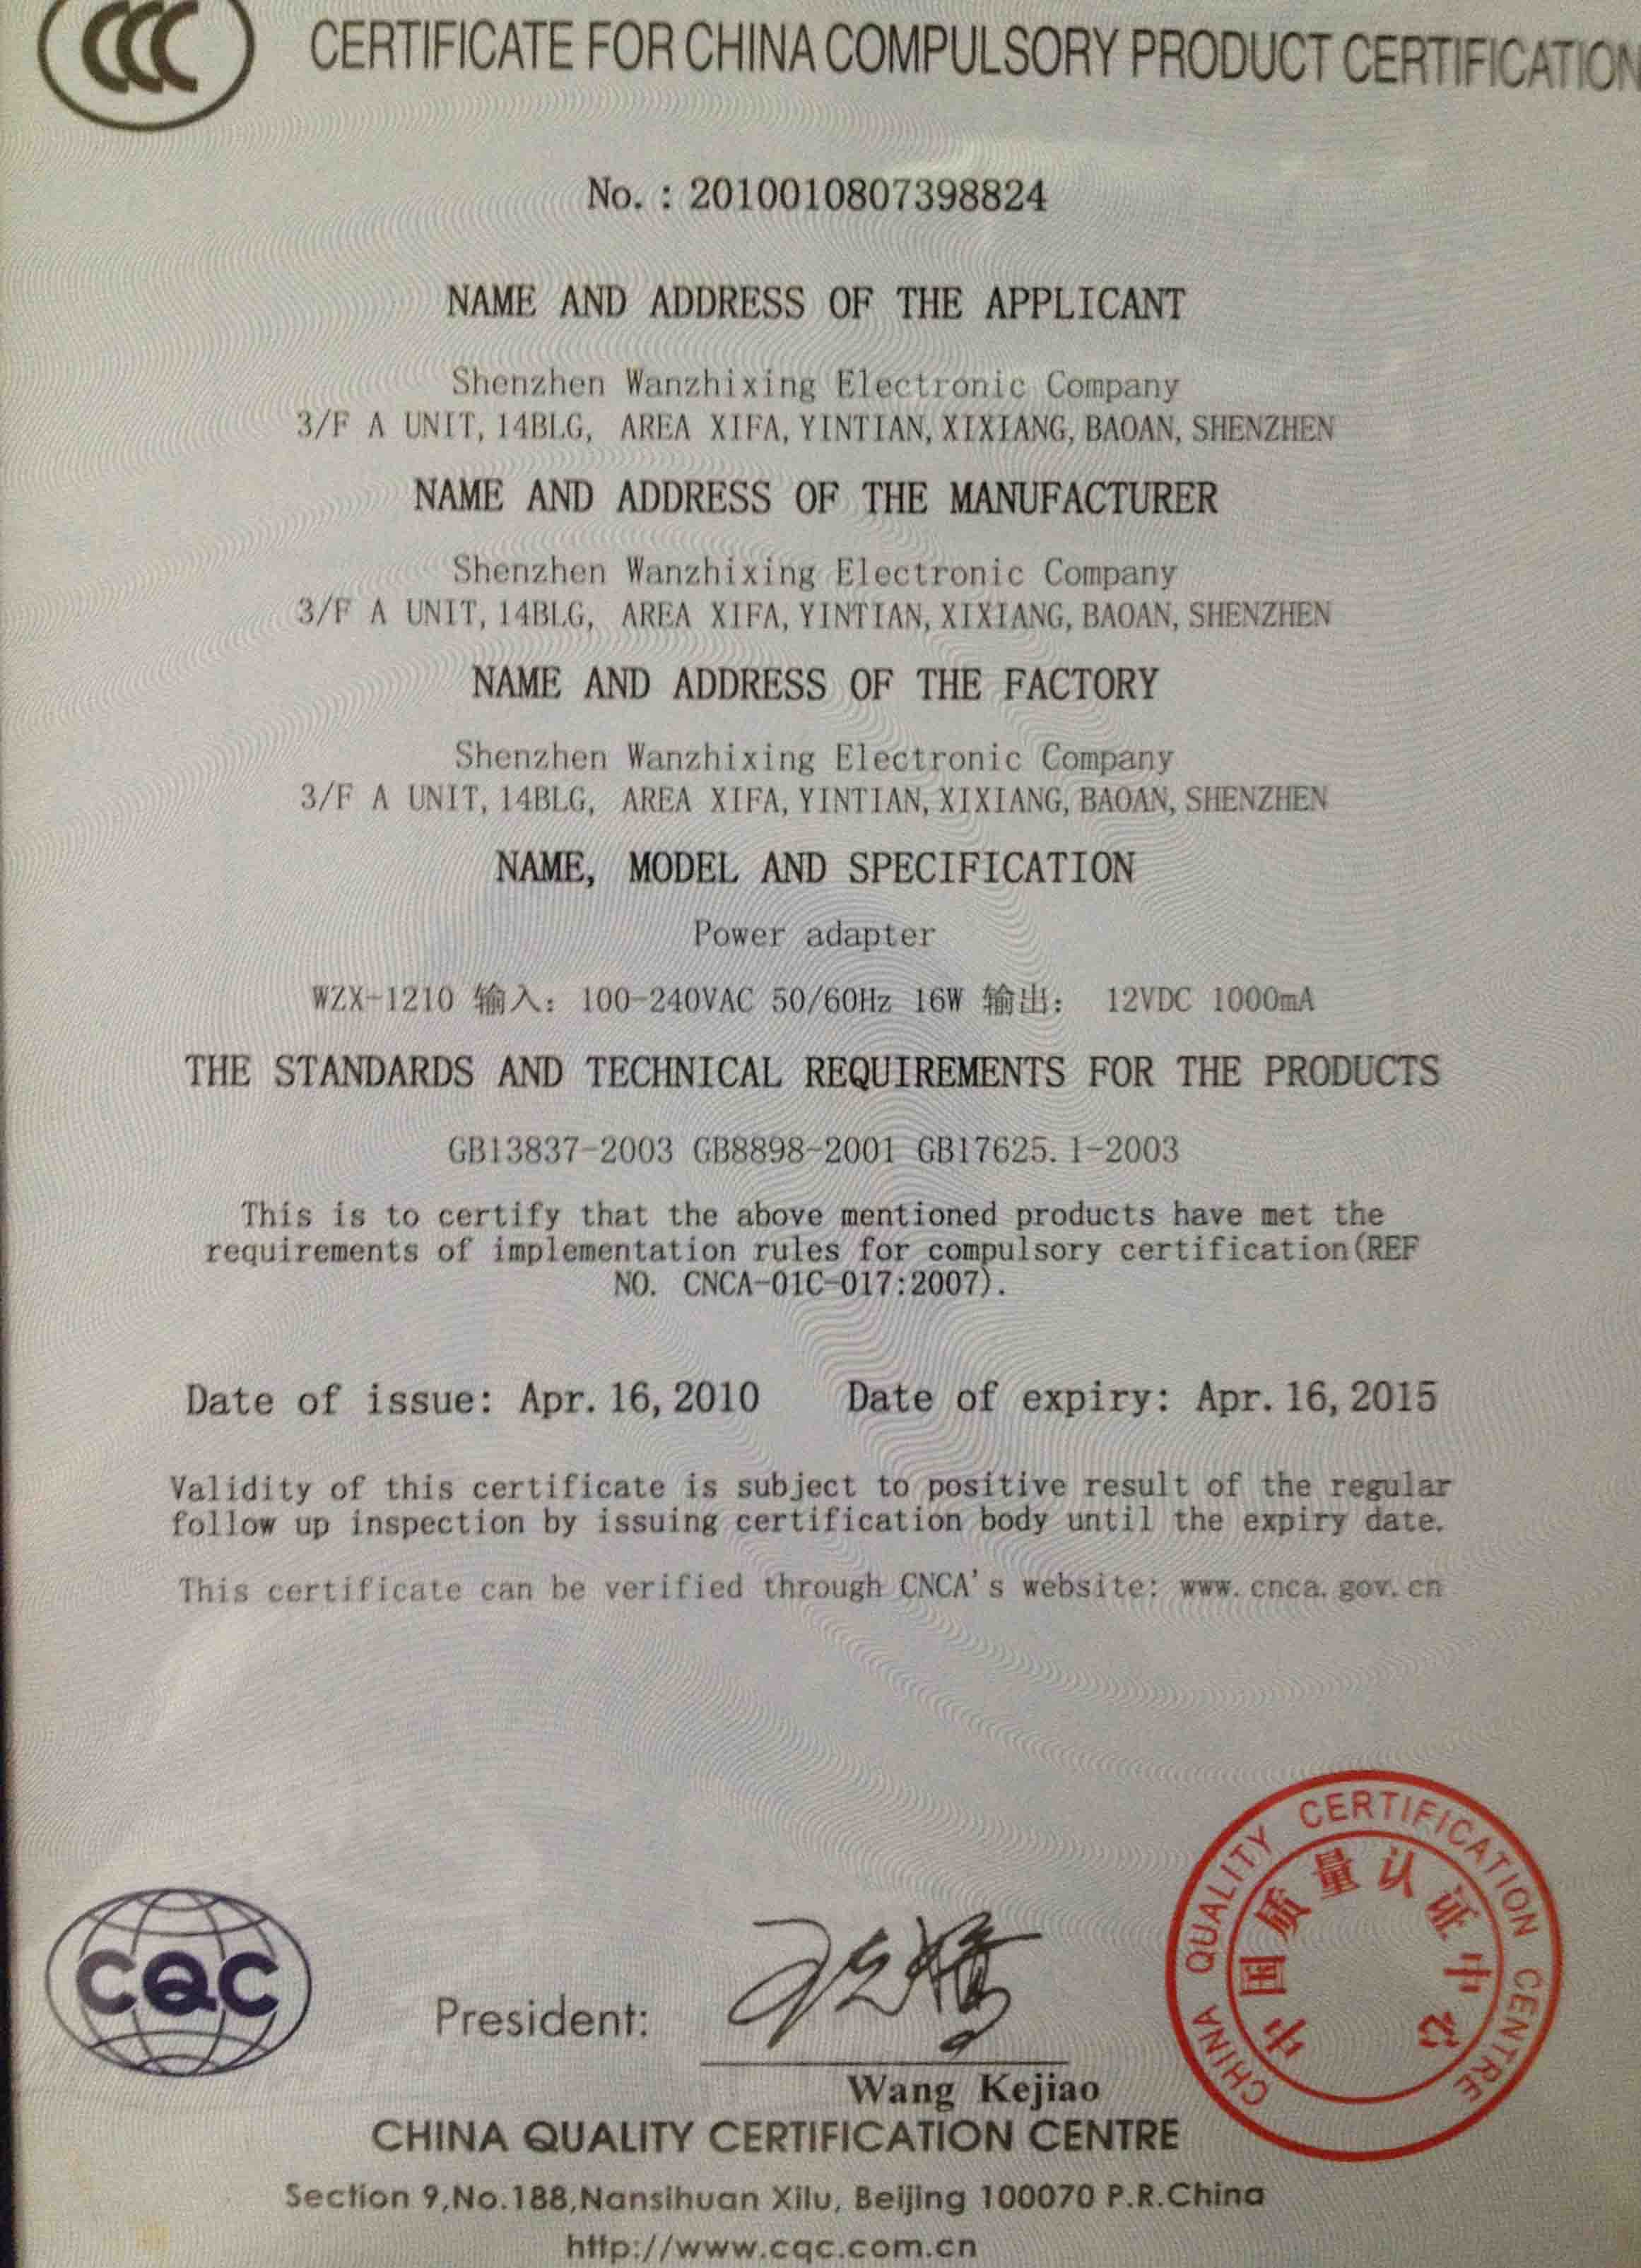 CCC China Compulsory Product Certification